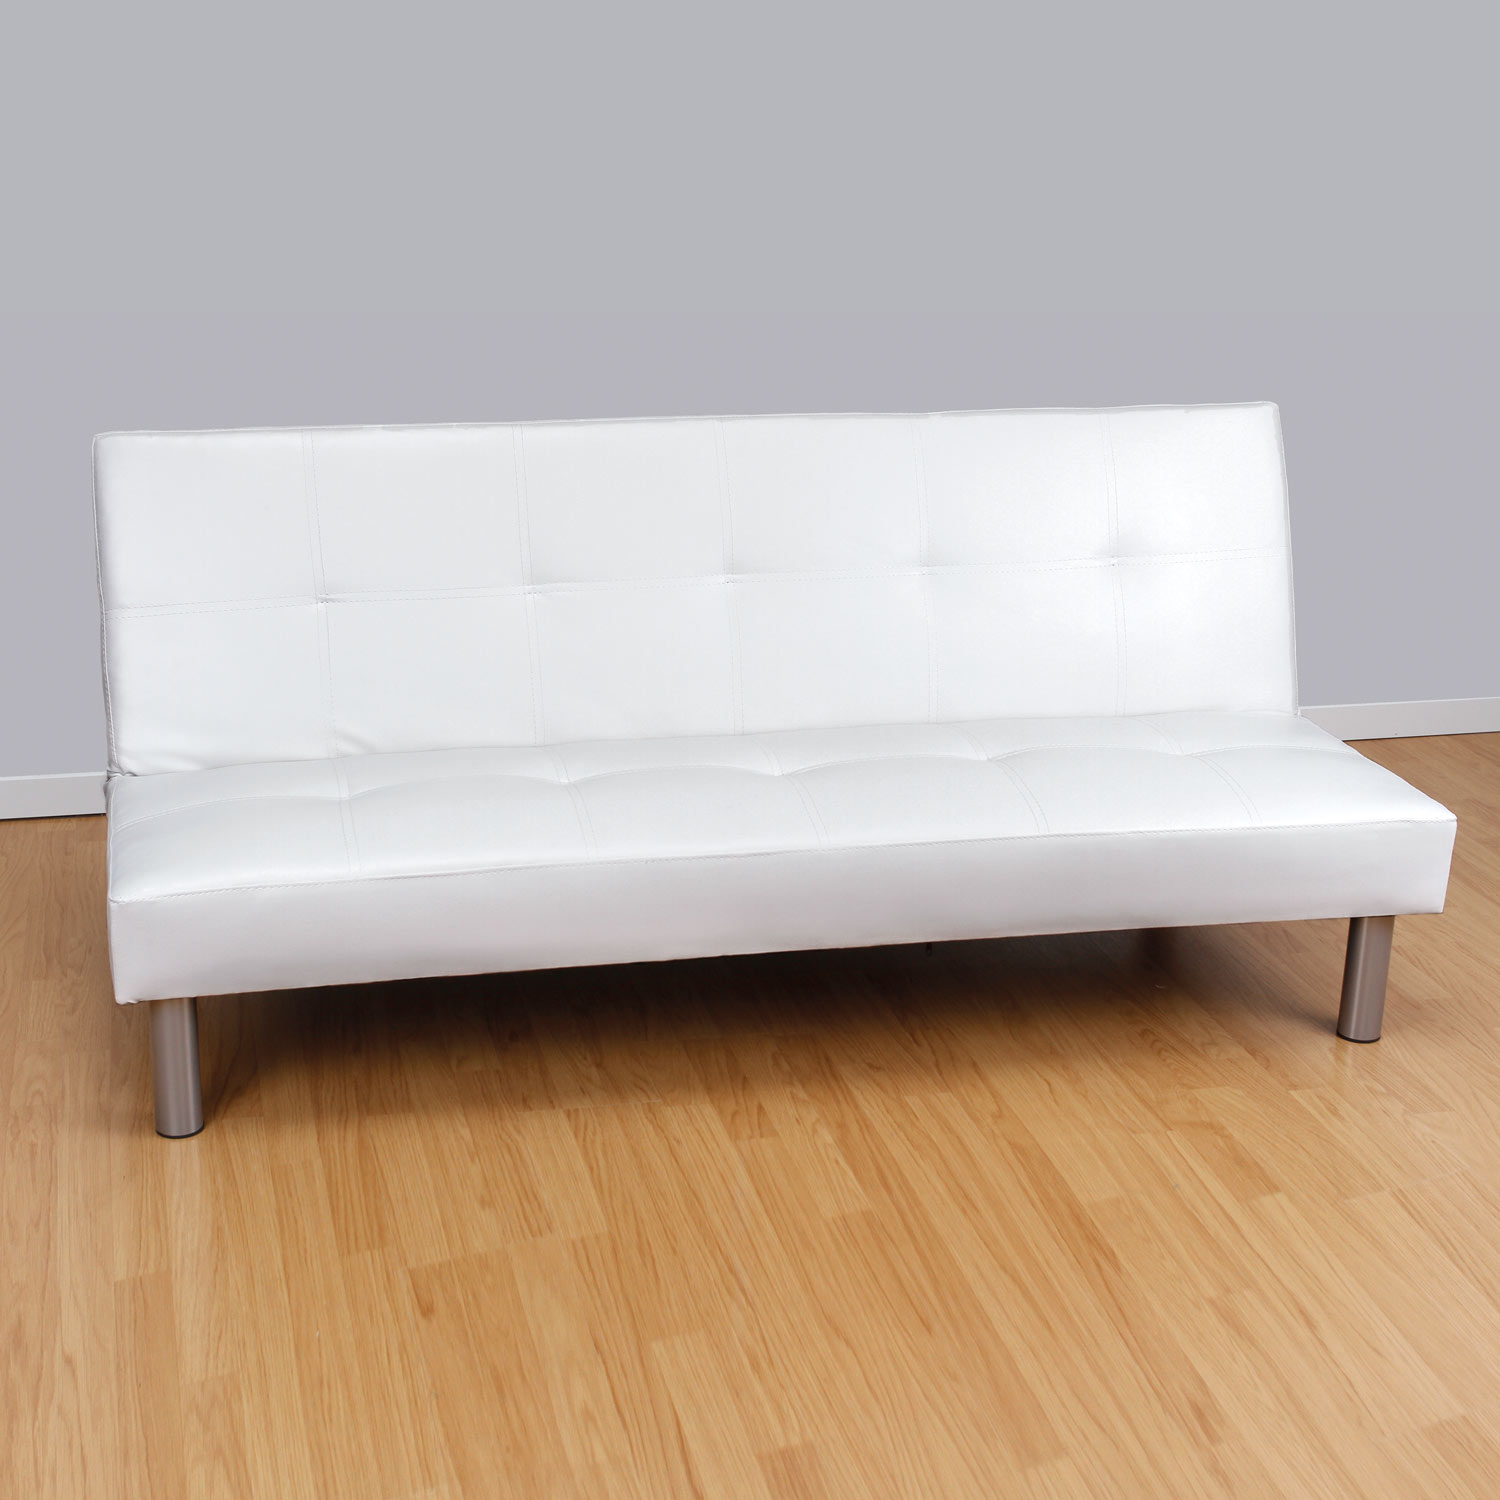 Sof polipiel blanco muebles baratos online for Sofa blanco barato